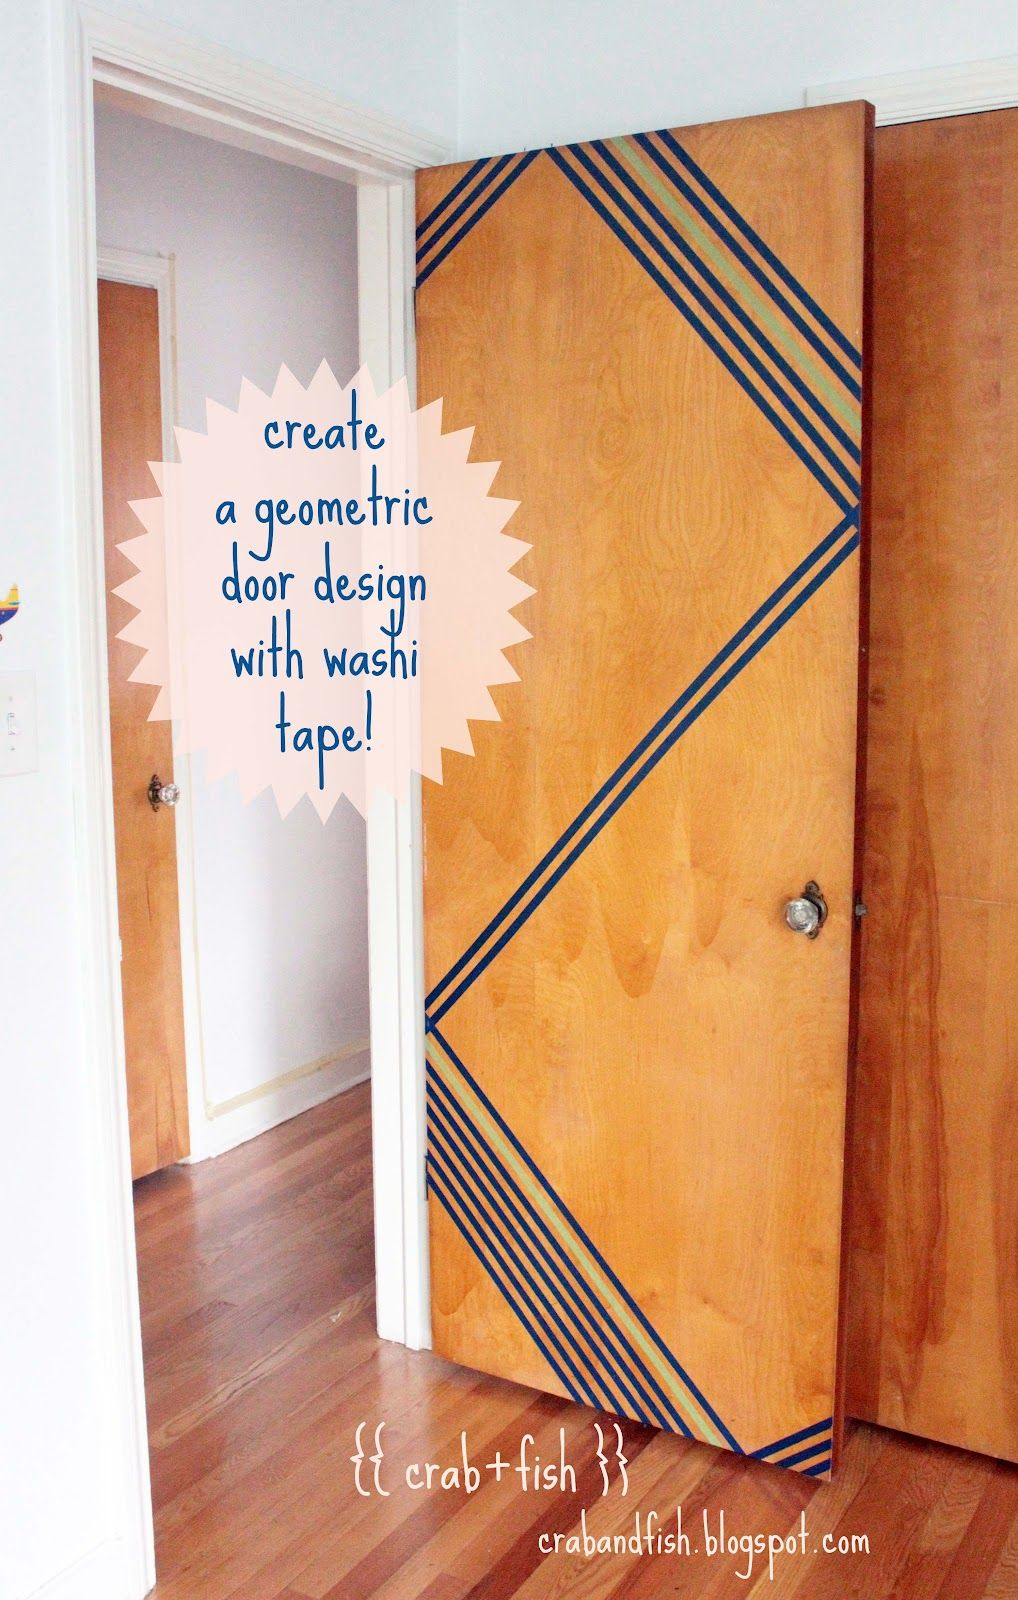 Create a geometric door design with washi tape Small space design